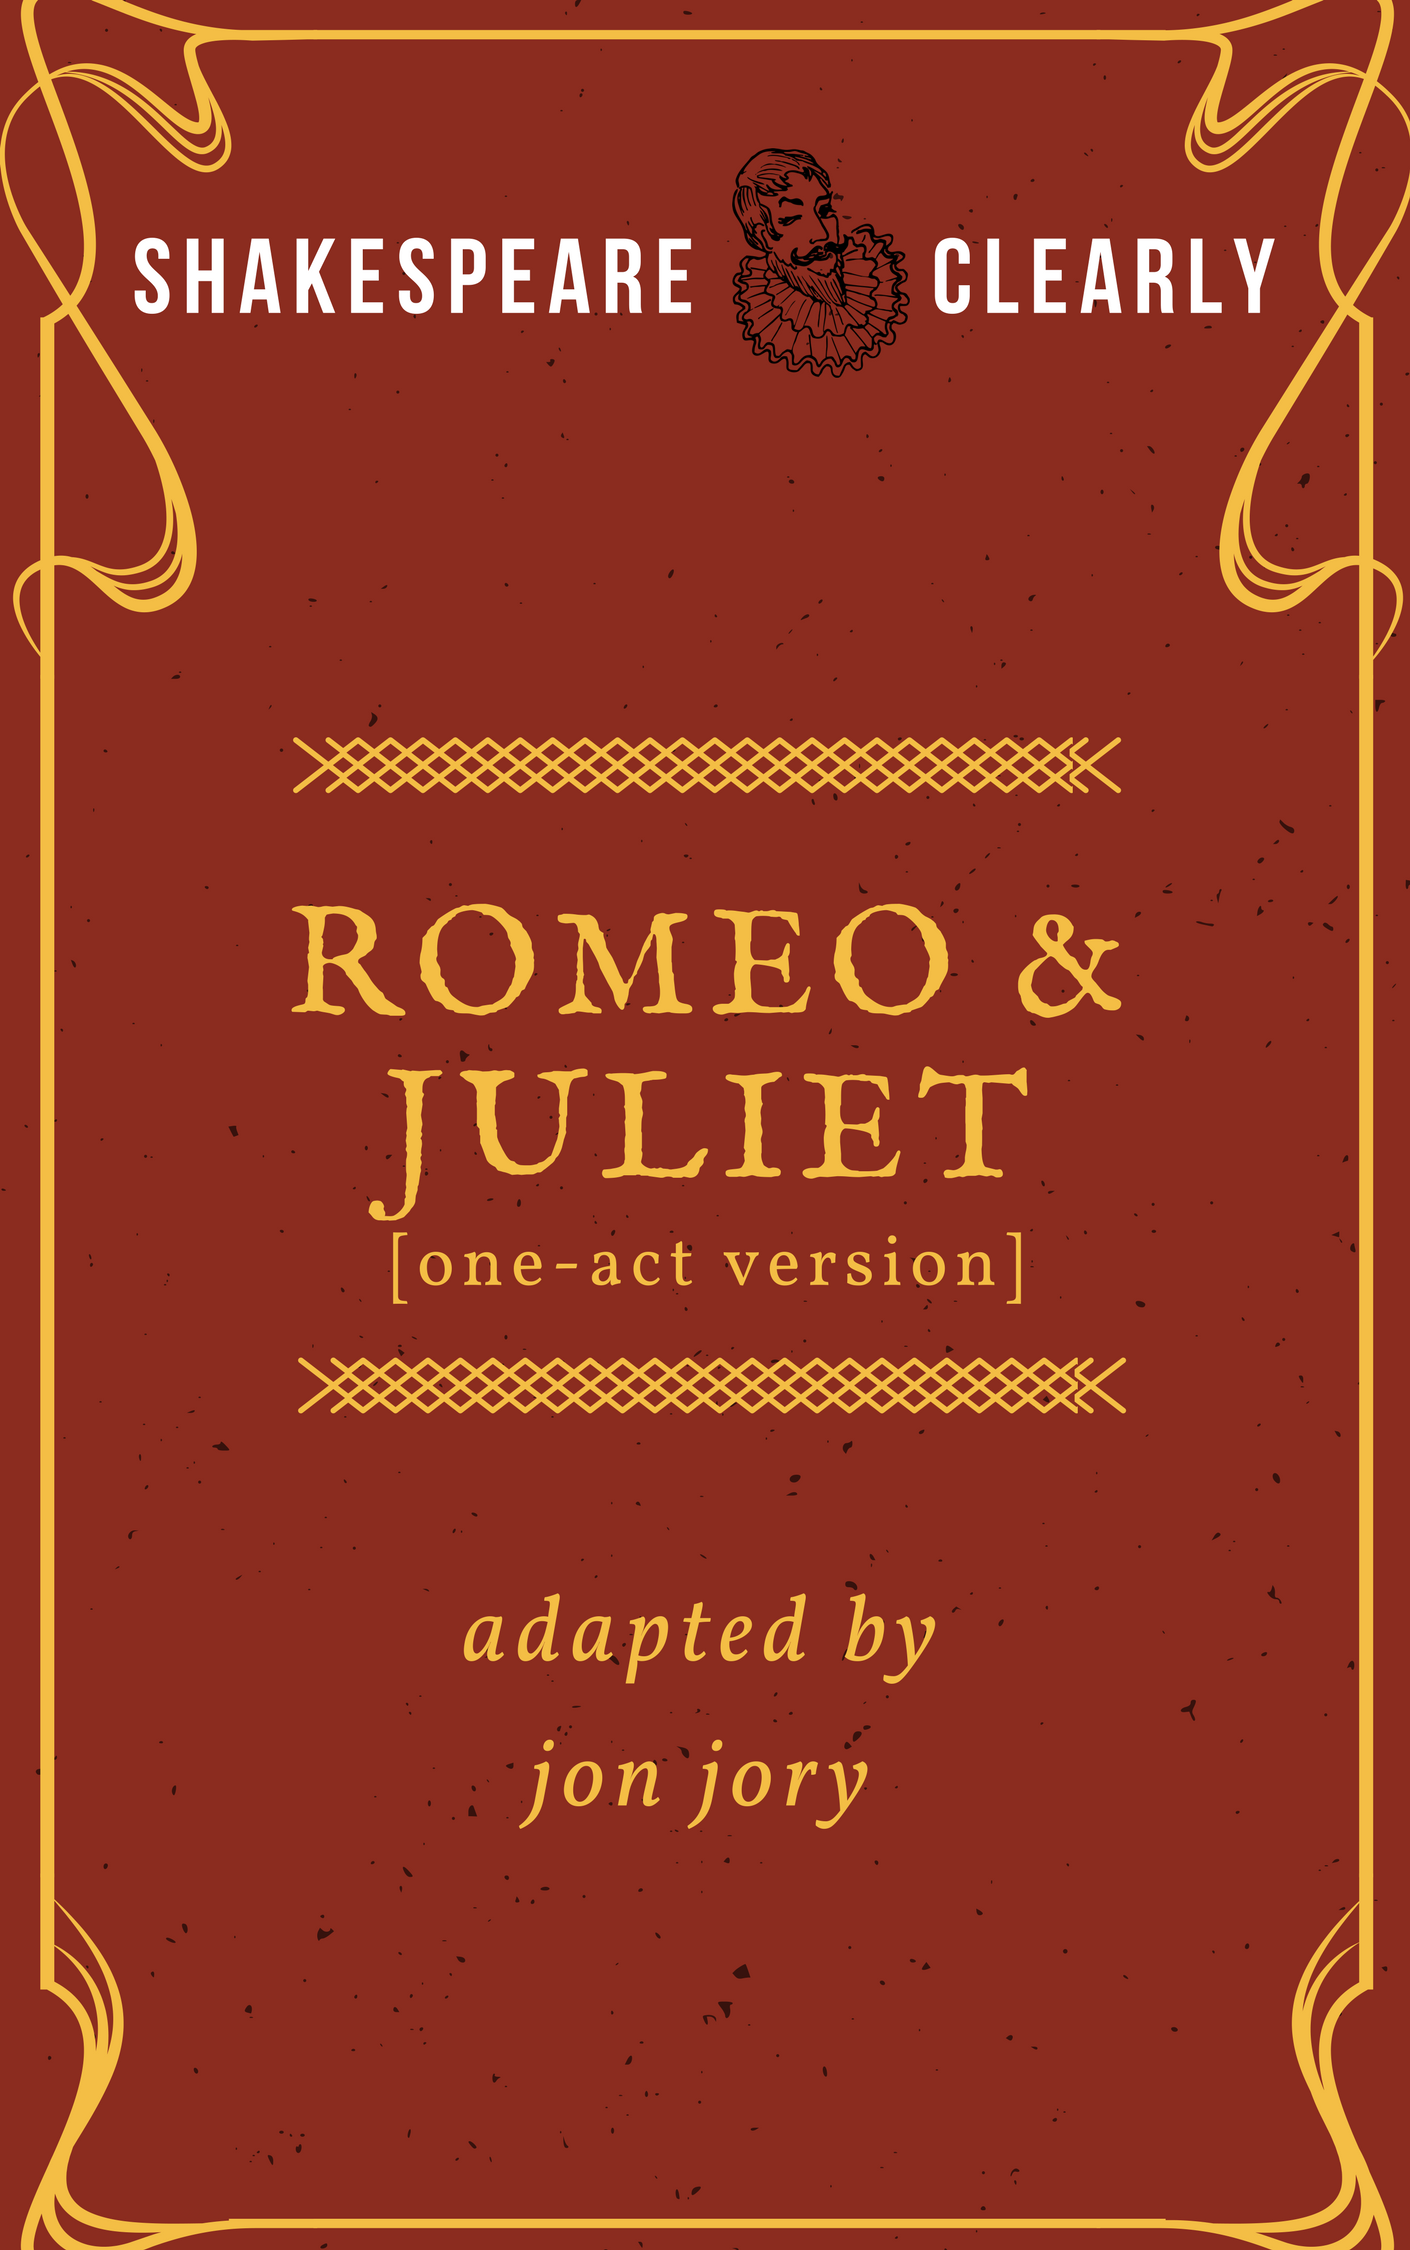 Romeo and Juliet one-act by Jon Jory